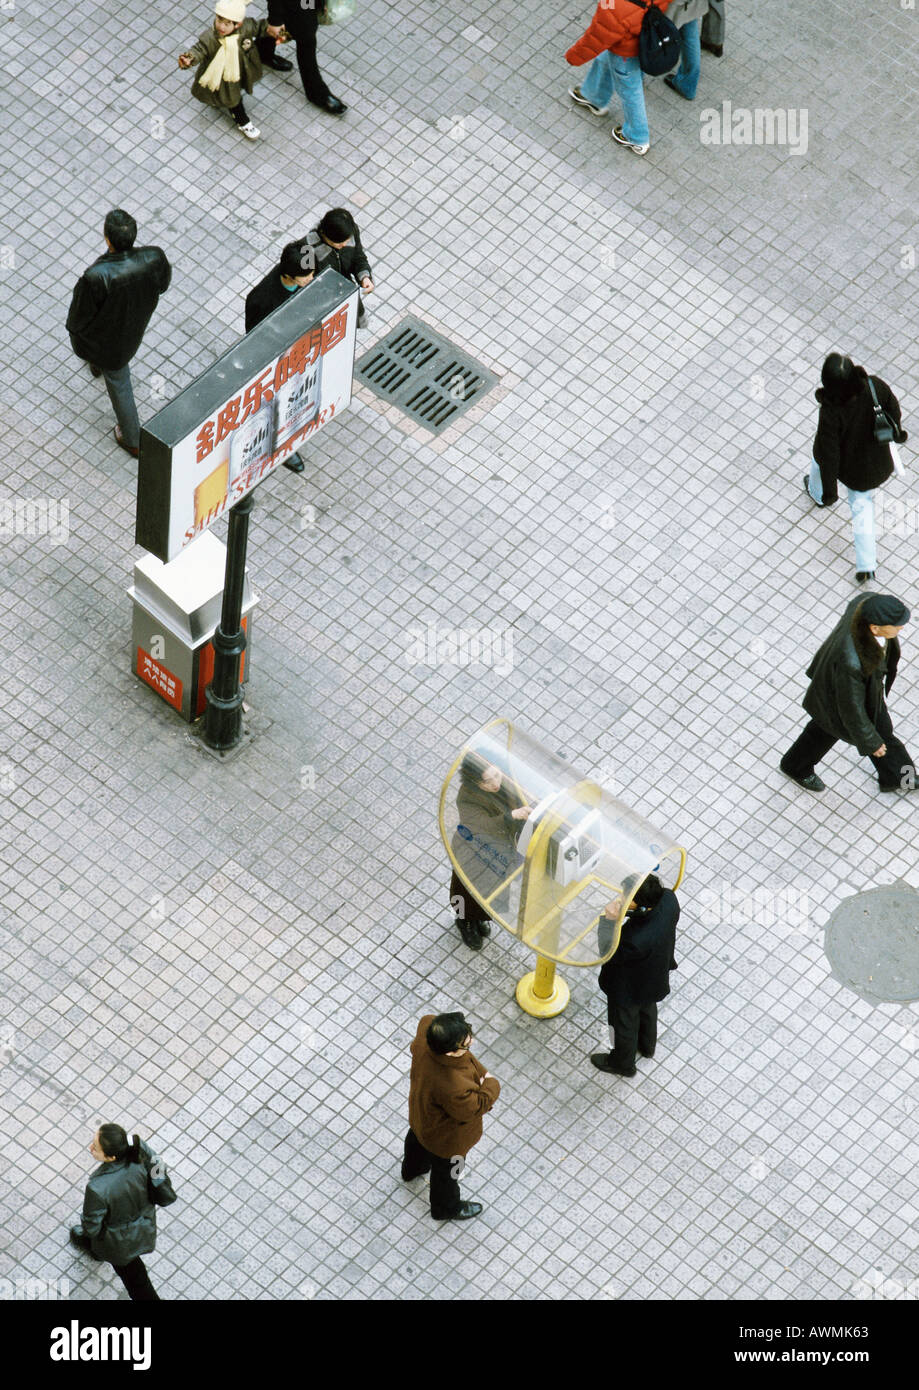 China, Liaoning, Dalian, pedestrians walking across esplanade, people using public pay phones, elevated view - Stock Image